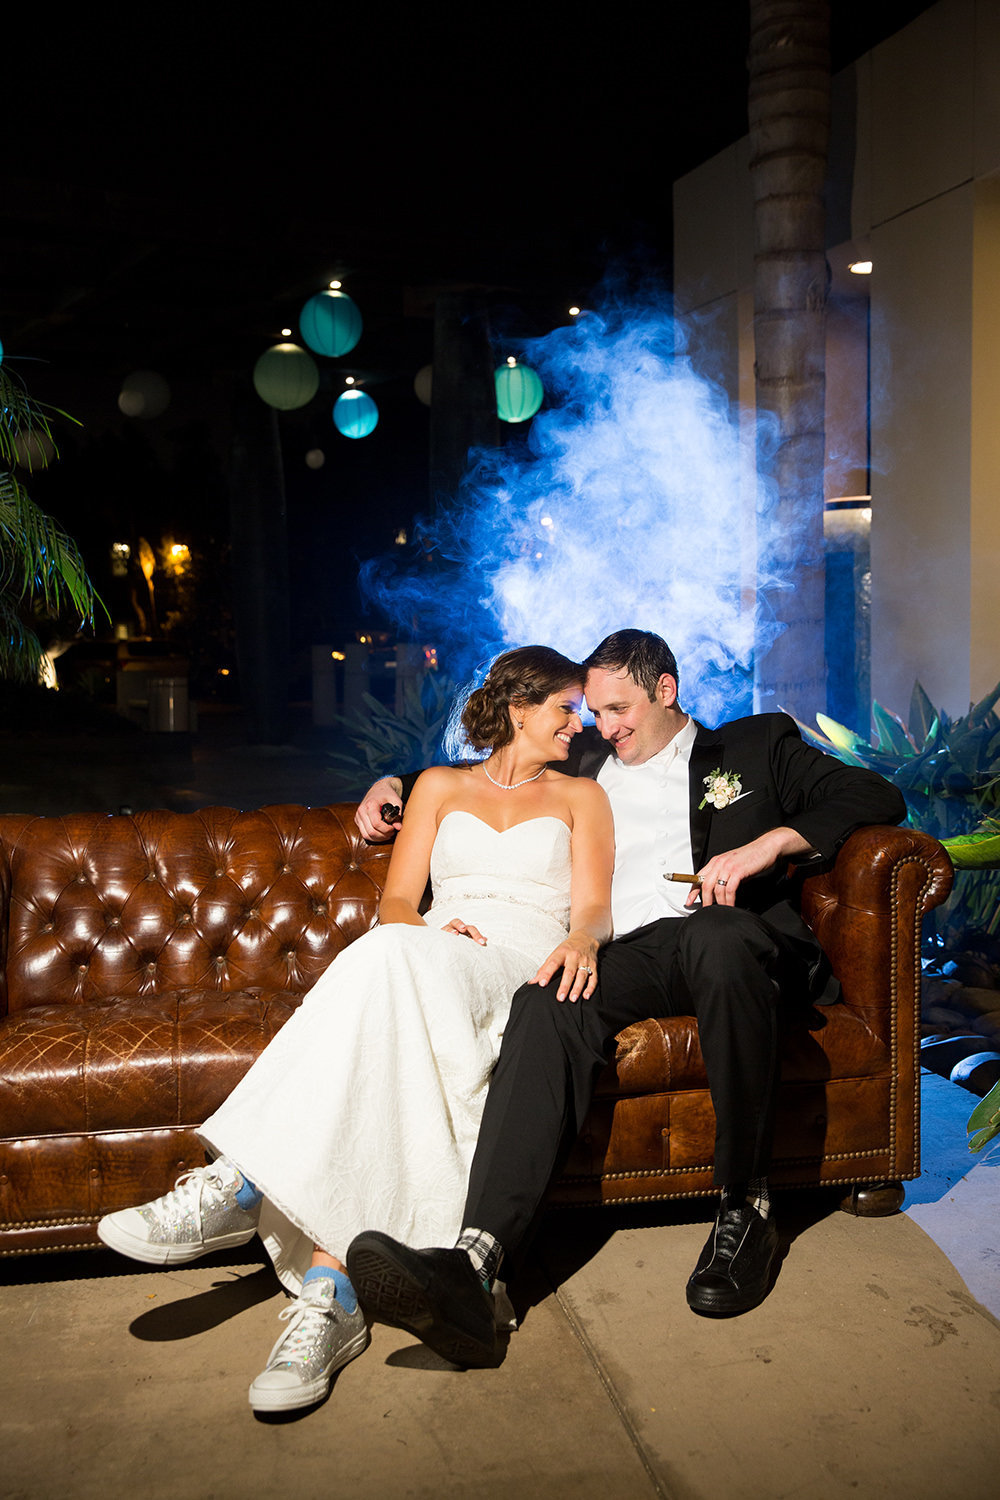 nightshot with smoke bride and groom